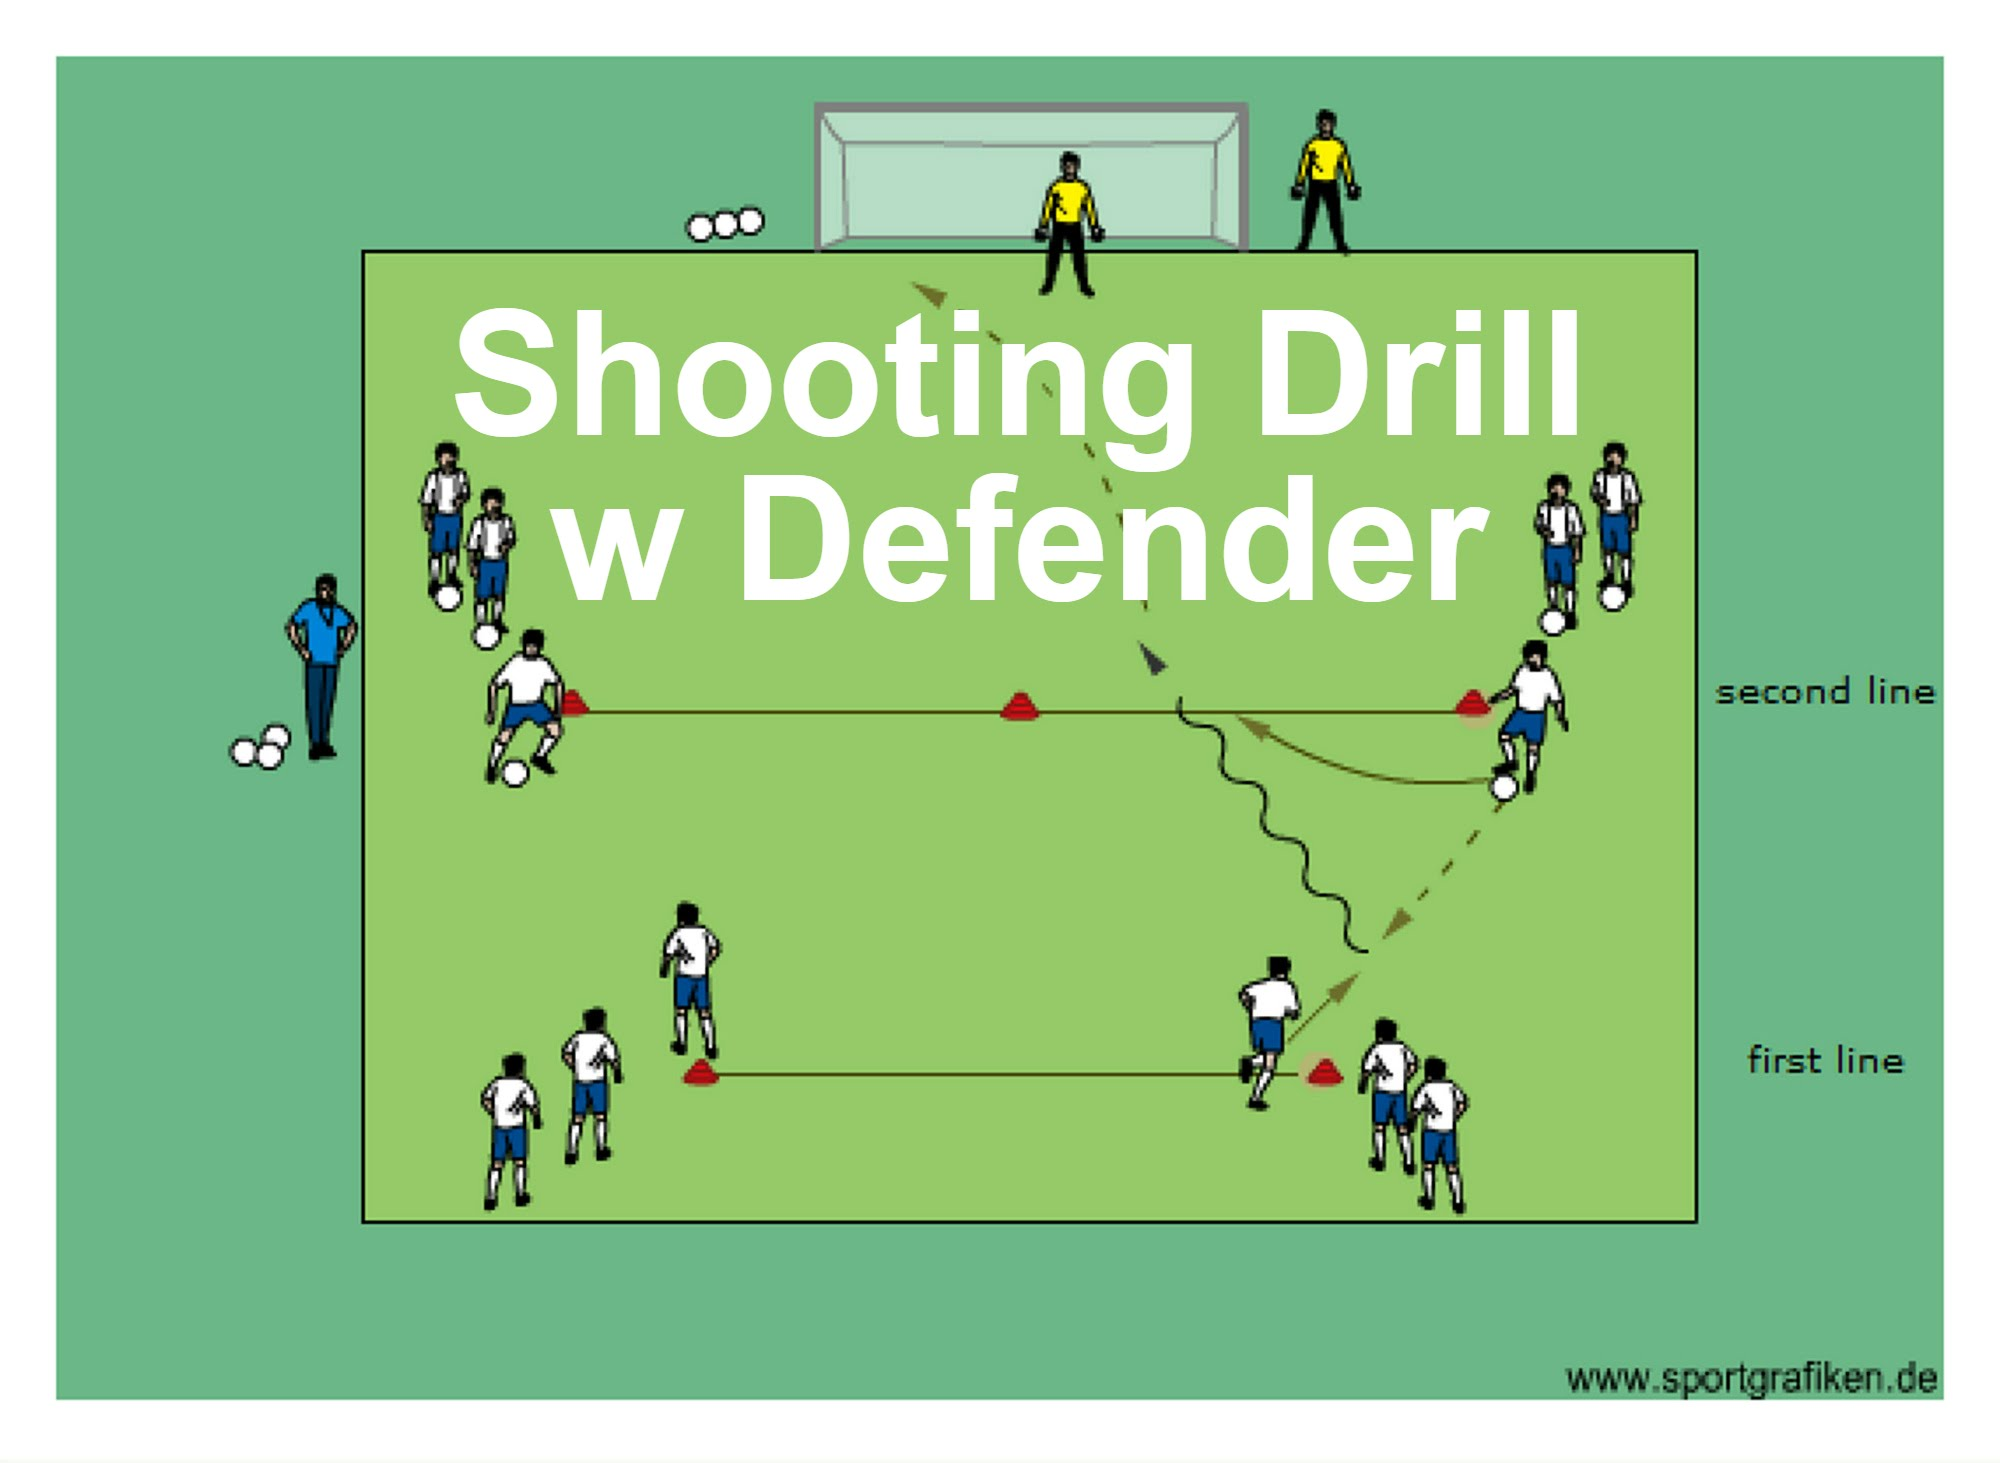 Fun Shooting Drill Shooting Tips: Soccer Shooting, Techniques And Drills